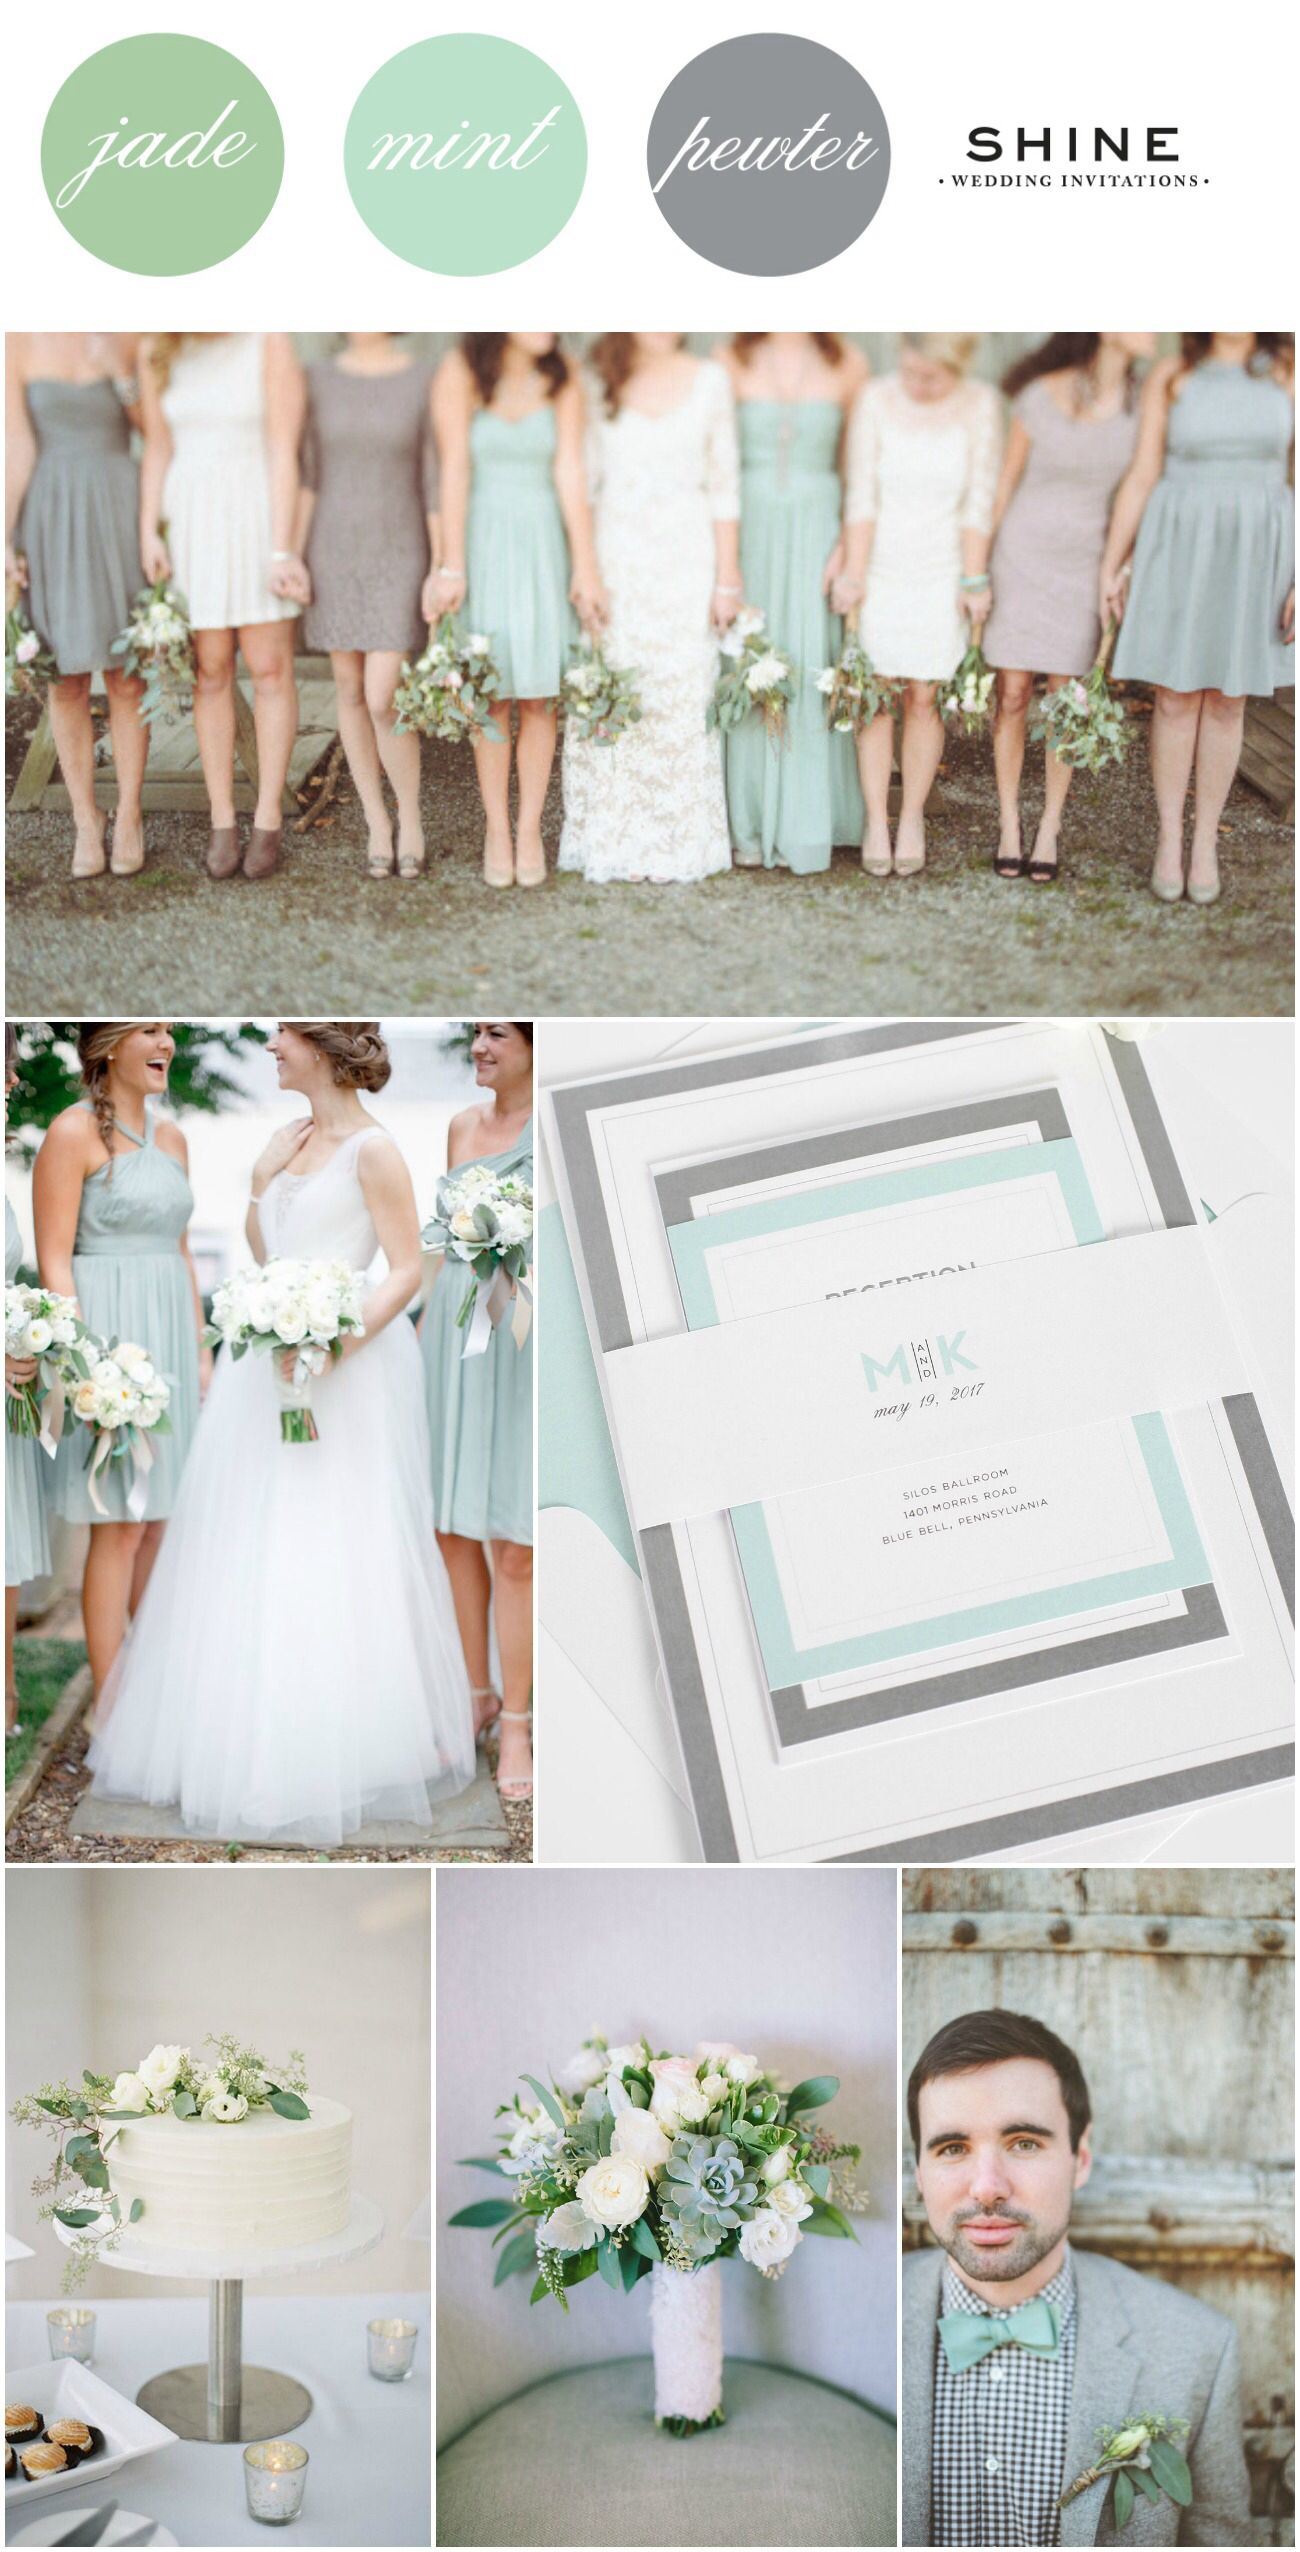 Pin By C Gibson Social Media Manager On Beautiful Wedding Color Ideas In 2018 Pinterest Colors And Inspiration